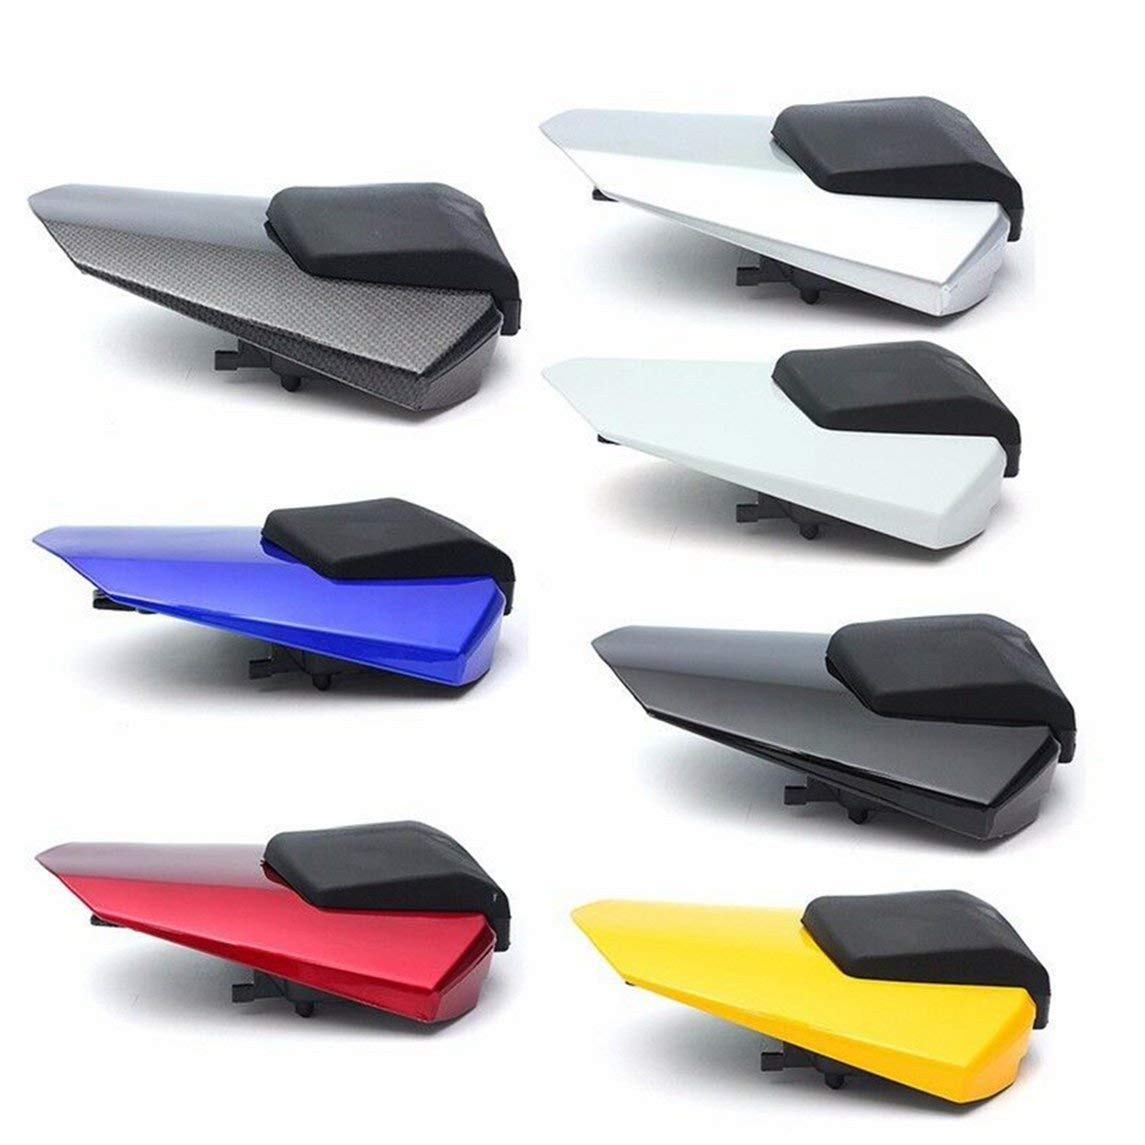 YXTFN Rear Pillion Passenger Cowl Seat Back Cover For Yamaha Yzf R6 2008-2015 2009